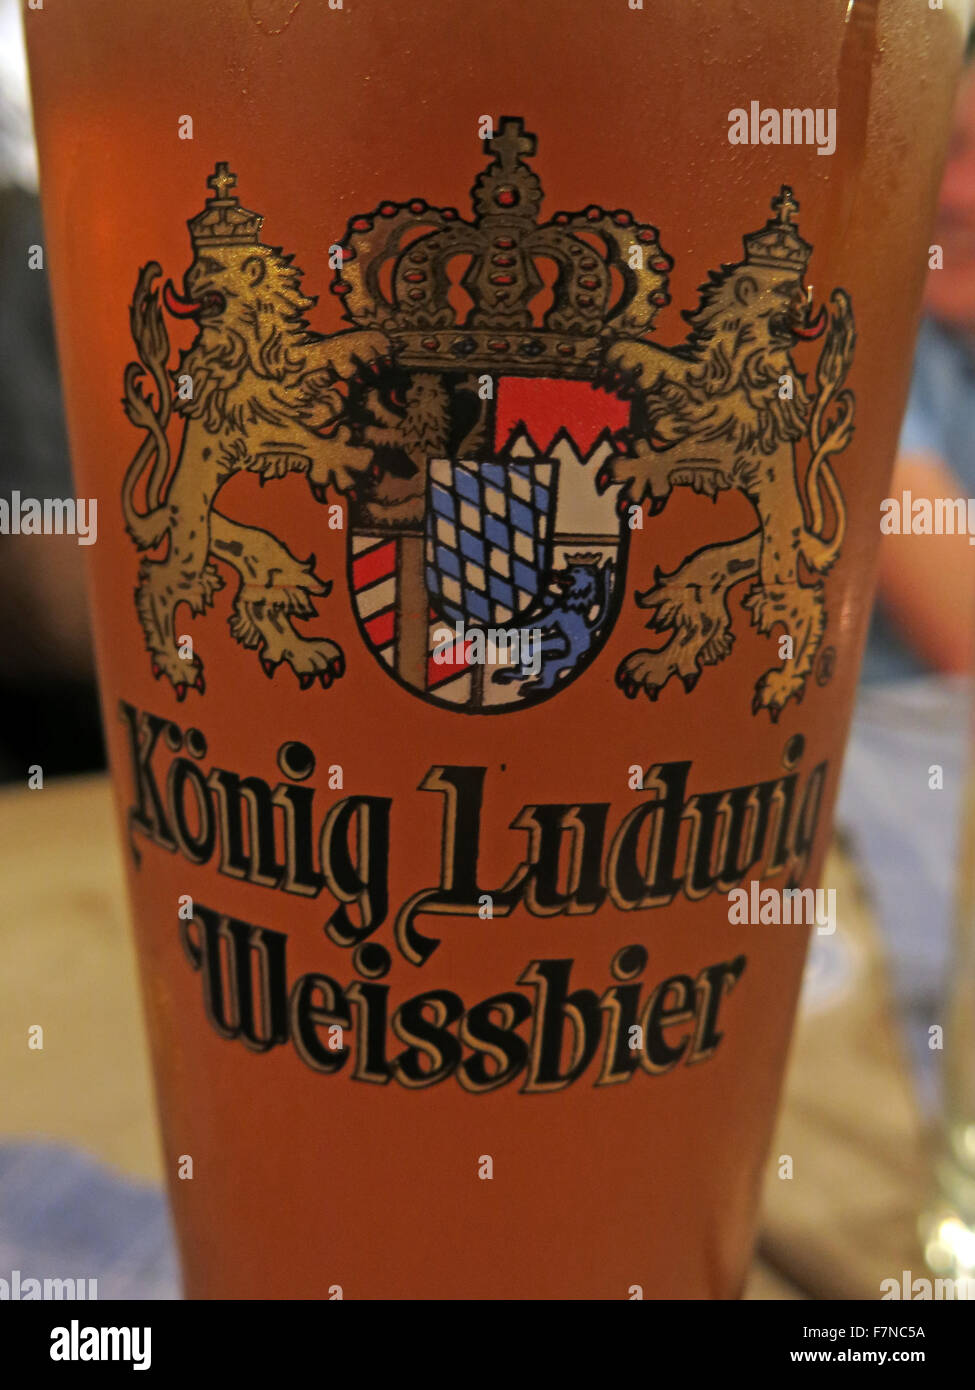 Weissbier,Munich,Germany,Wheat,beer,Hefe,Weizen,Hefe-Weizen,HefeWeizen,König,yeast,fruity,Hefeweissbier,brew,brewing,alcohol,drinking,royal,Bavarian,Bavaria,World,Beer,Award,beers,A glass,konig Ludwig,Wheat Beer,Wheat Bier,World Beer Award,GoTonySmith,Deutsche,Deutschland,Buy Pictures of,Buy Images Of